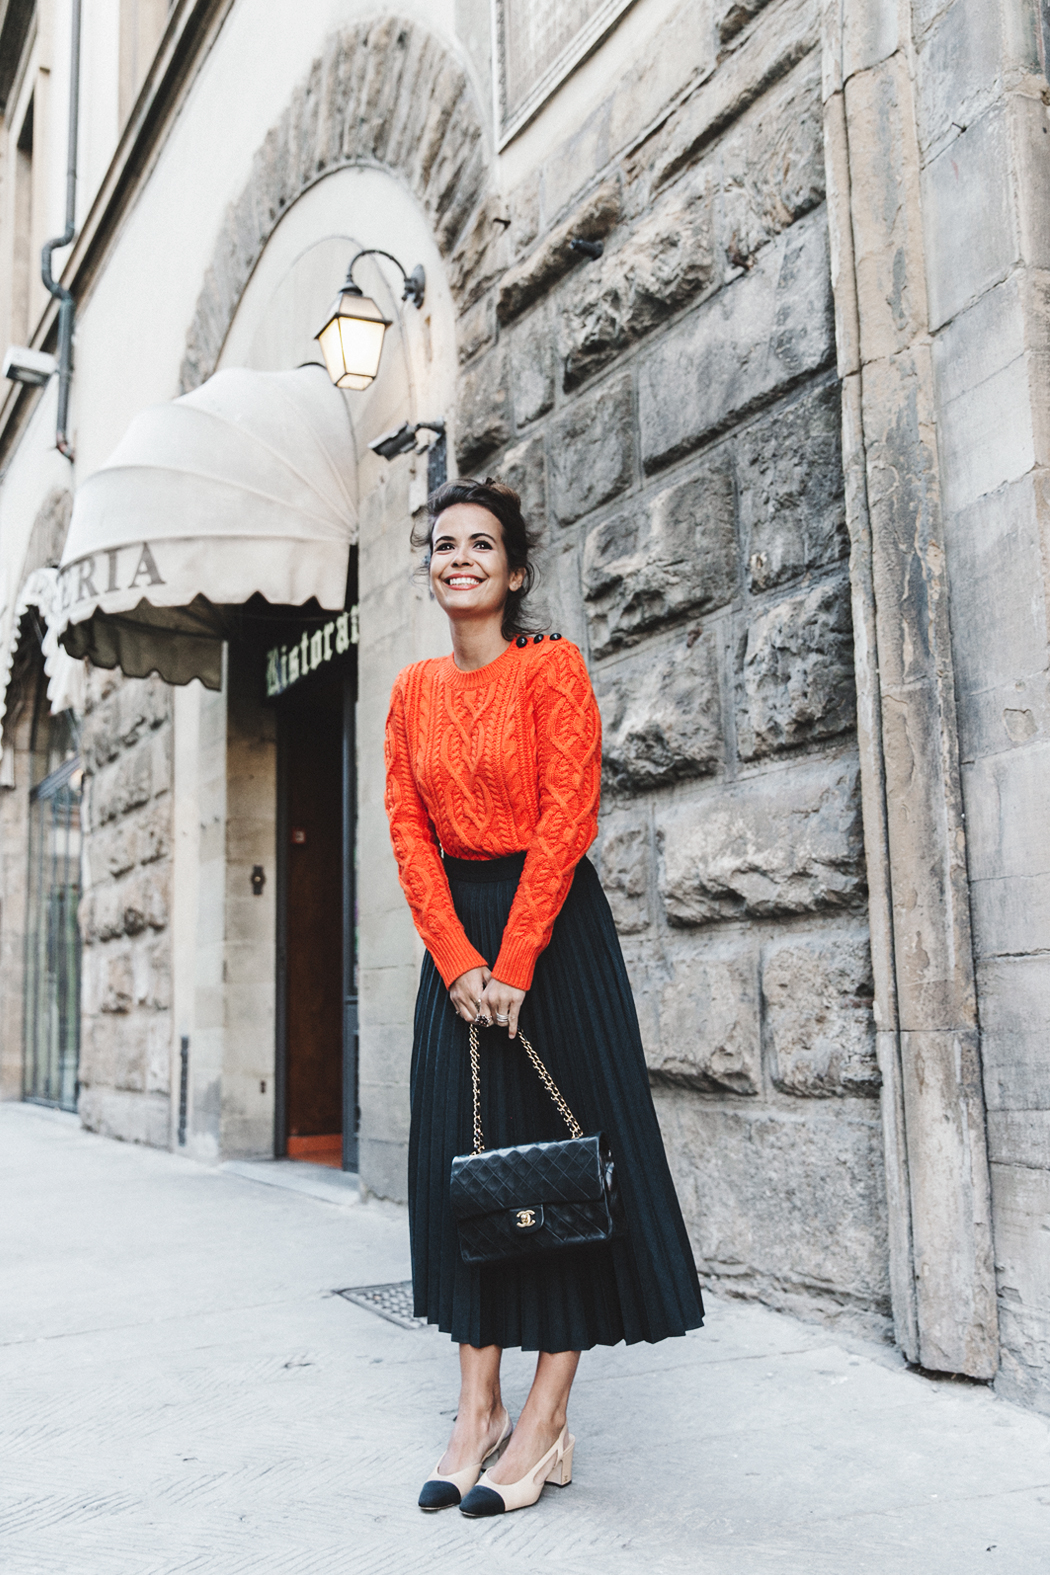 Orange_Sweater-Midi_Skirt-Slingback_Shoes_Chanel-Vintage_Bag-Florence-Outfit-Street_Style-18